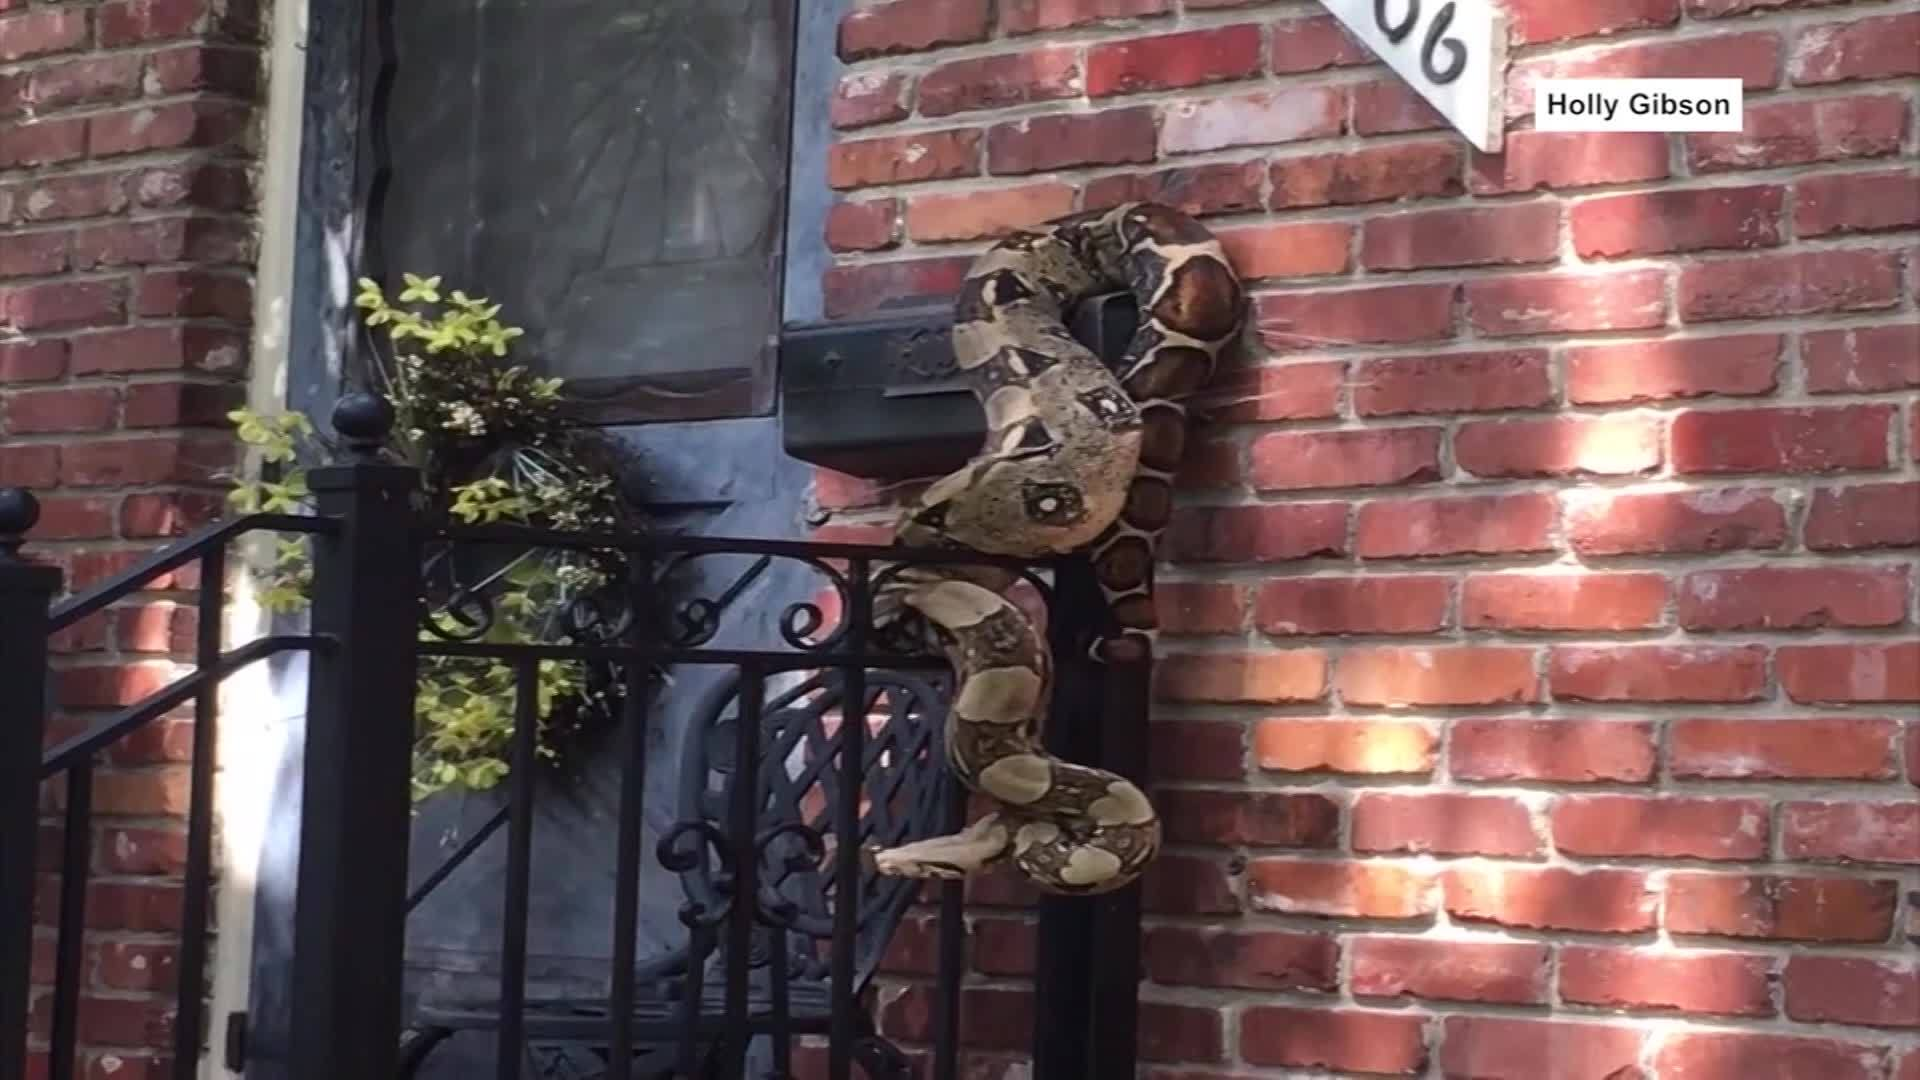 VIDEO: Mailman finds huge boa constrictor wrapped around mailbox